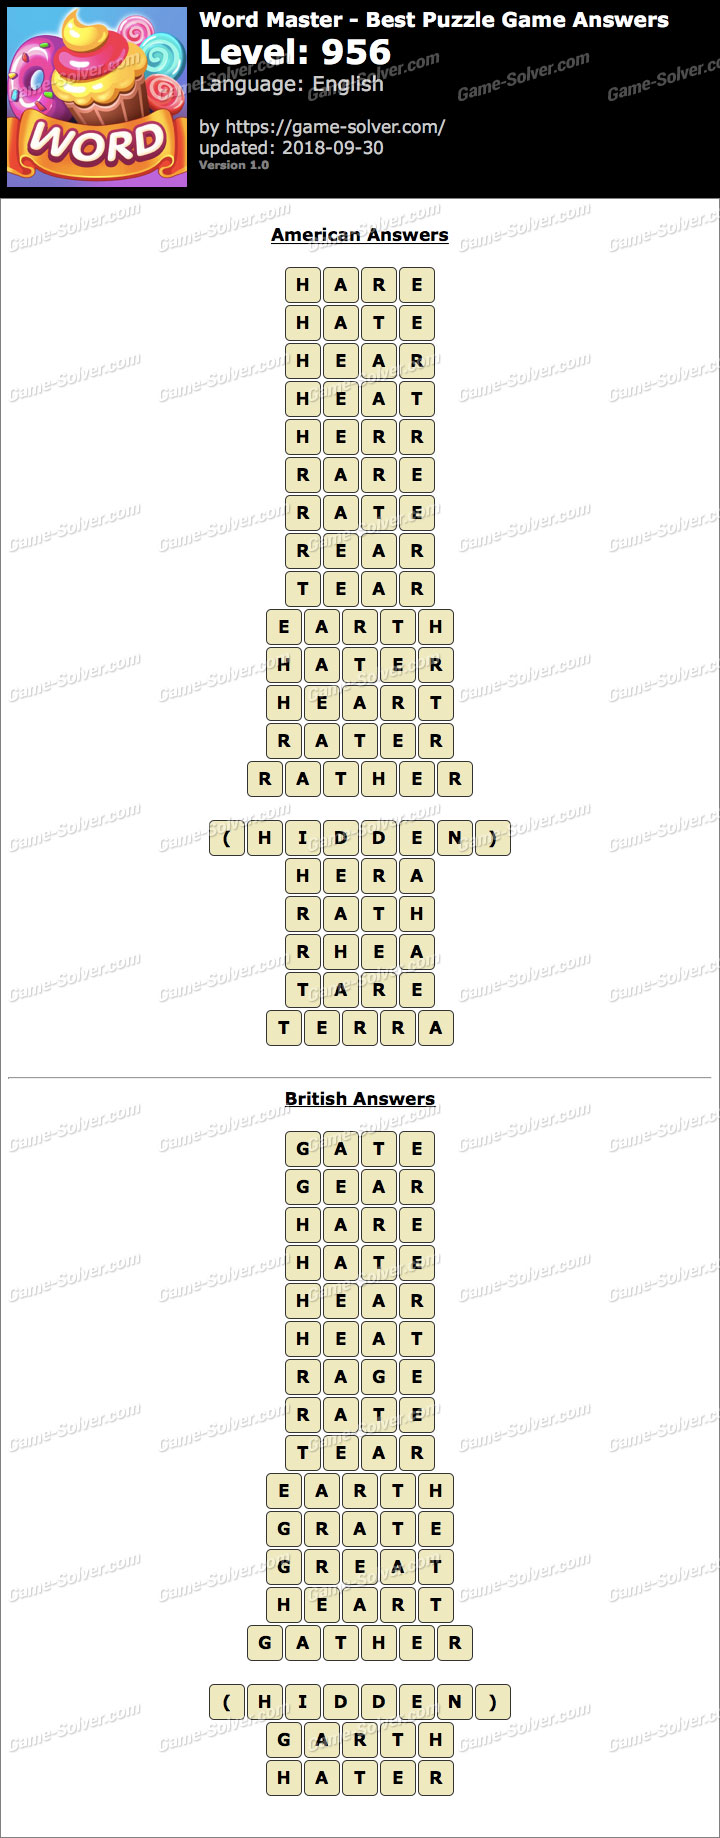 Word Master-Best Puzzle Game Level 956 Answers